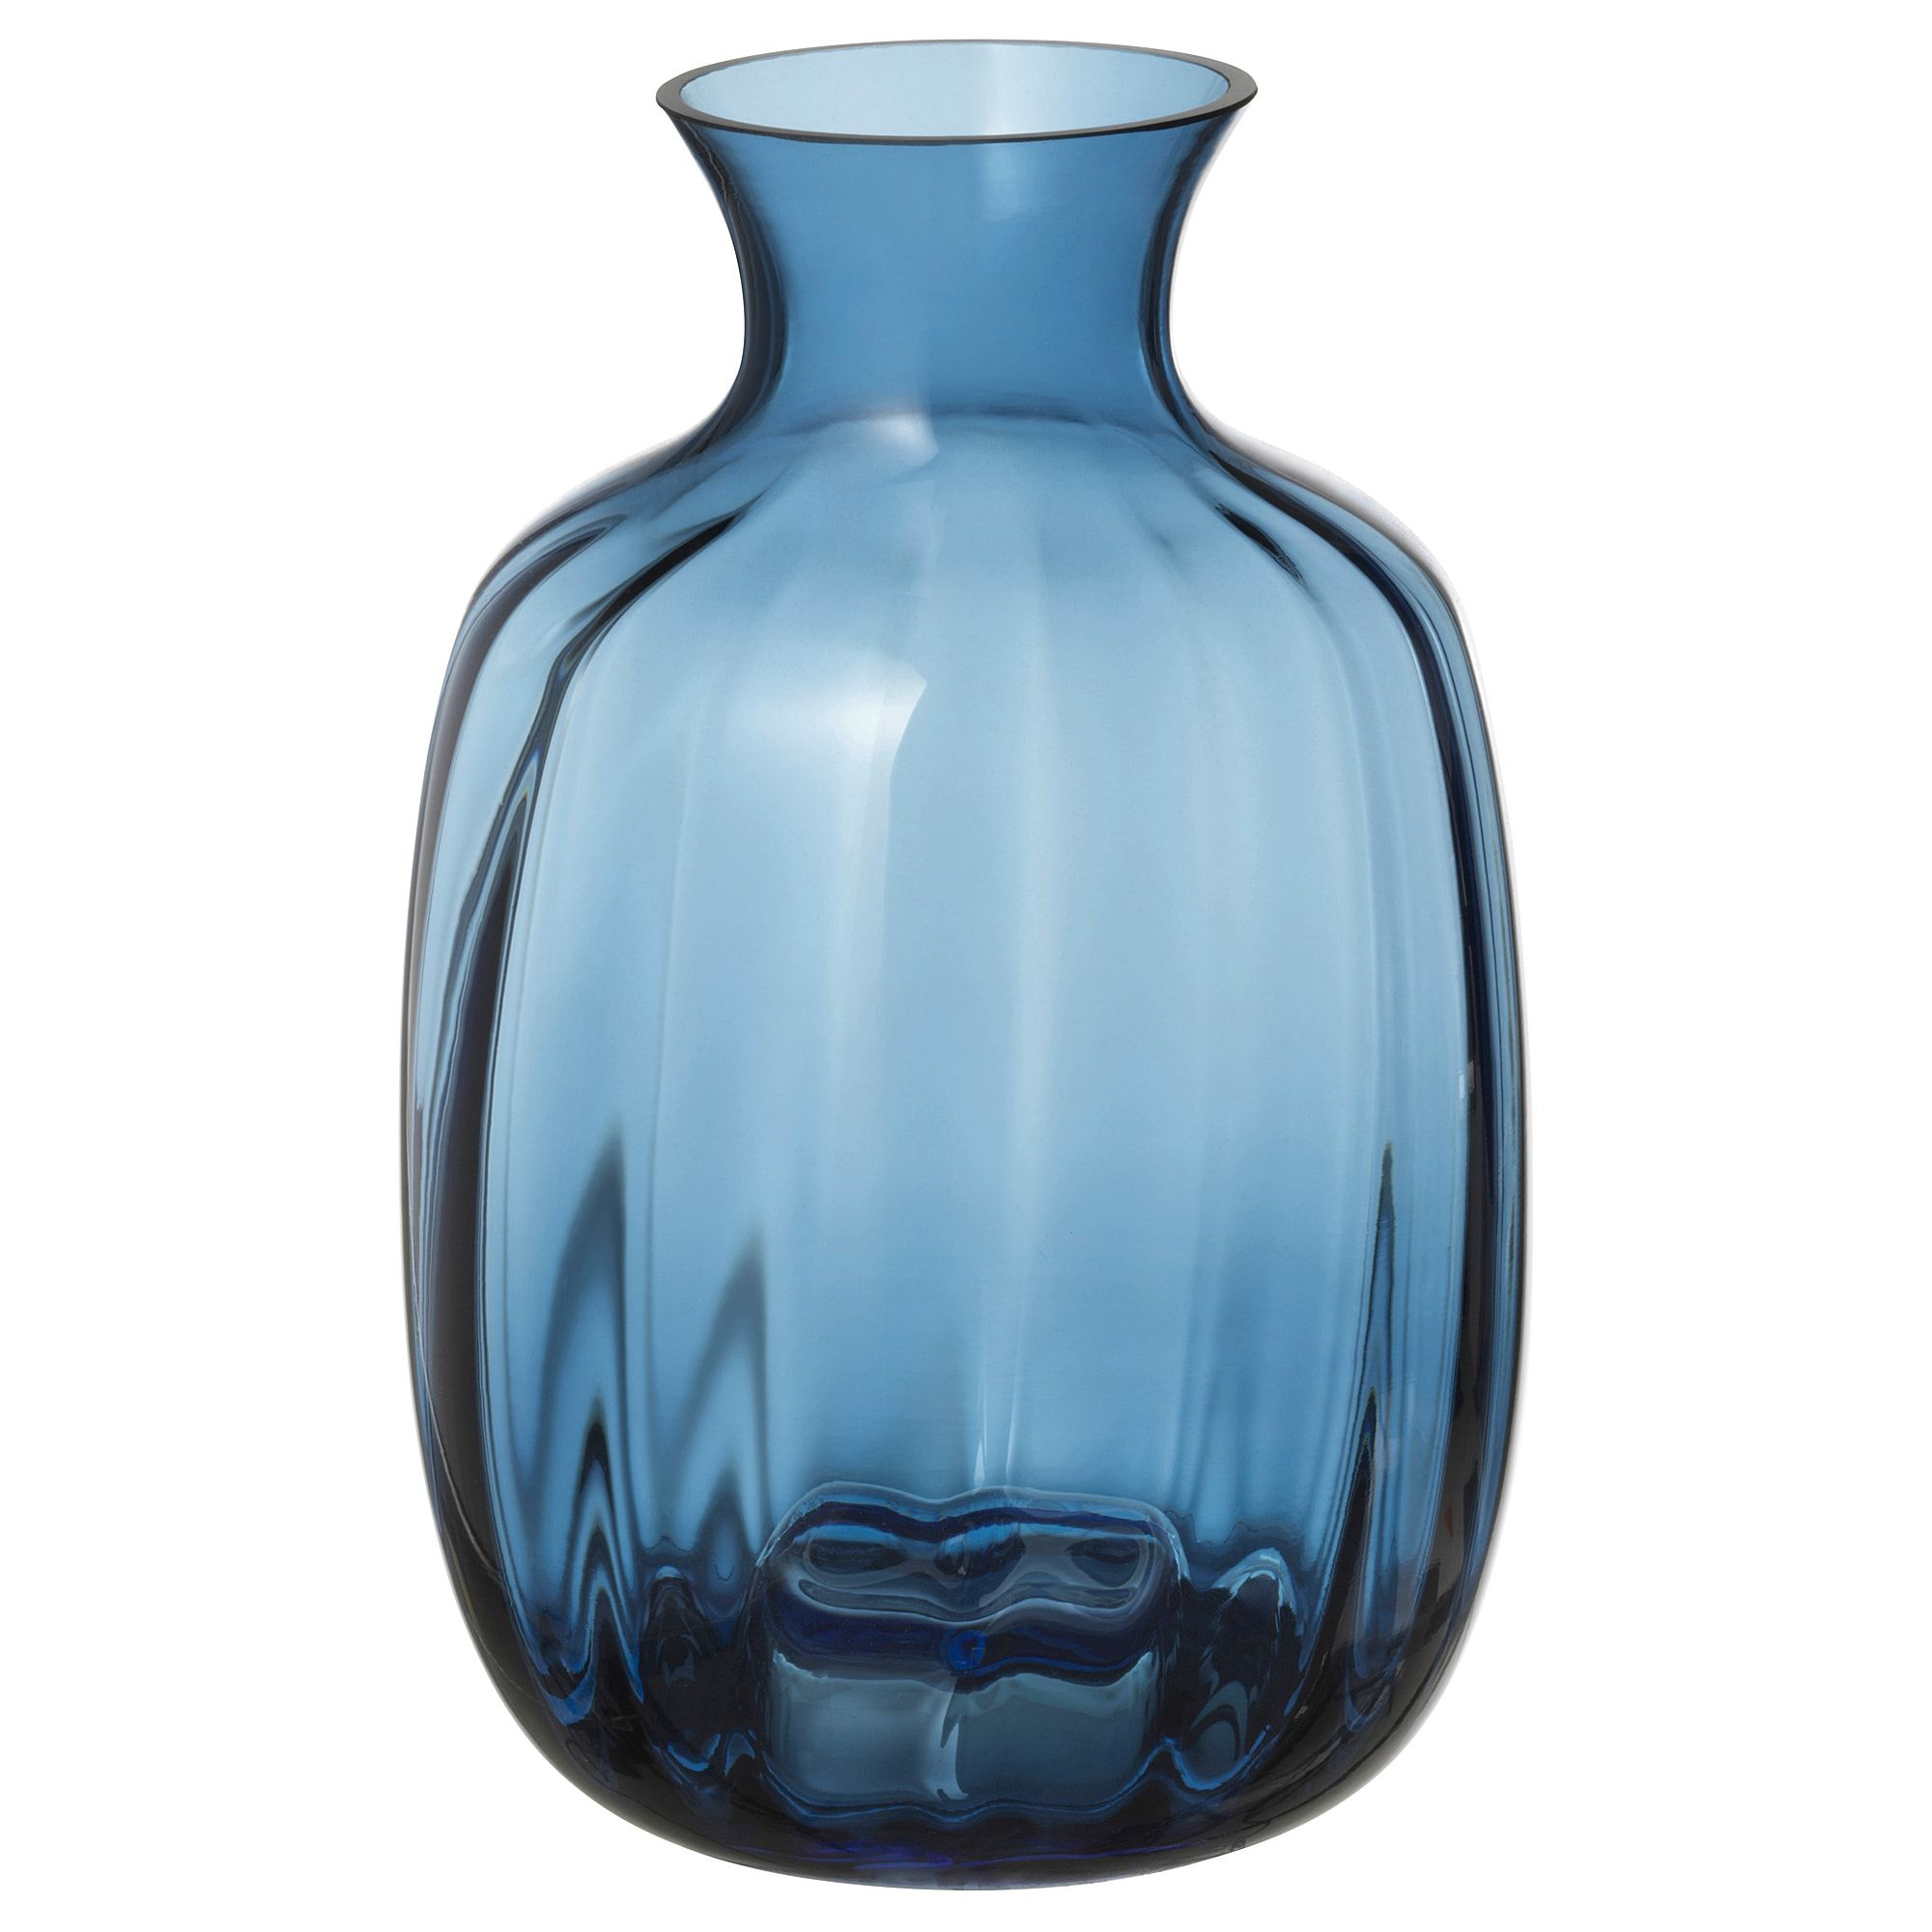 Tonsatta Vase Blue 8 Glass Flower Vases Blue Glass Vase Vase